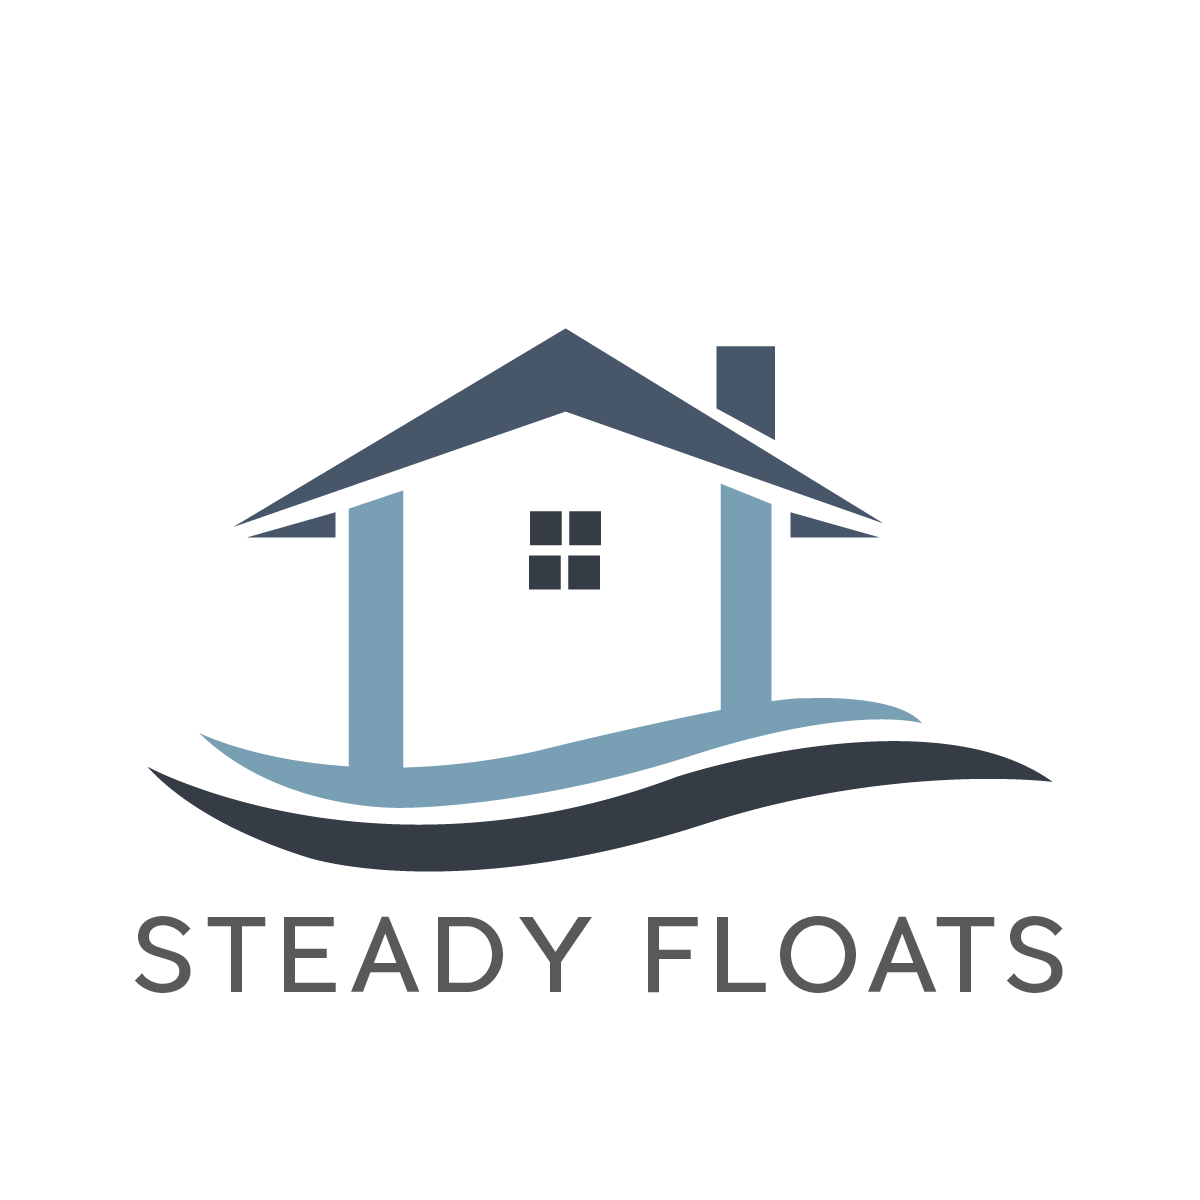 Fantastic Seattle Houseboats For Sale Floating Homes Steady Floats Download Free Architecture Designs Intelgarnamadebymaigaardcom